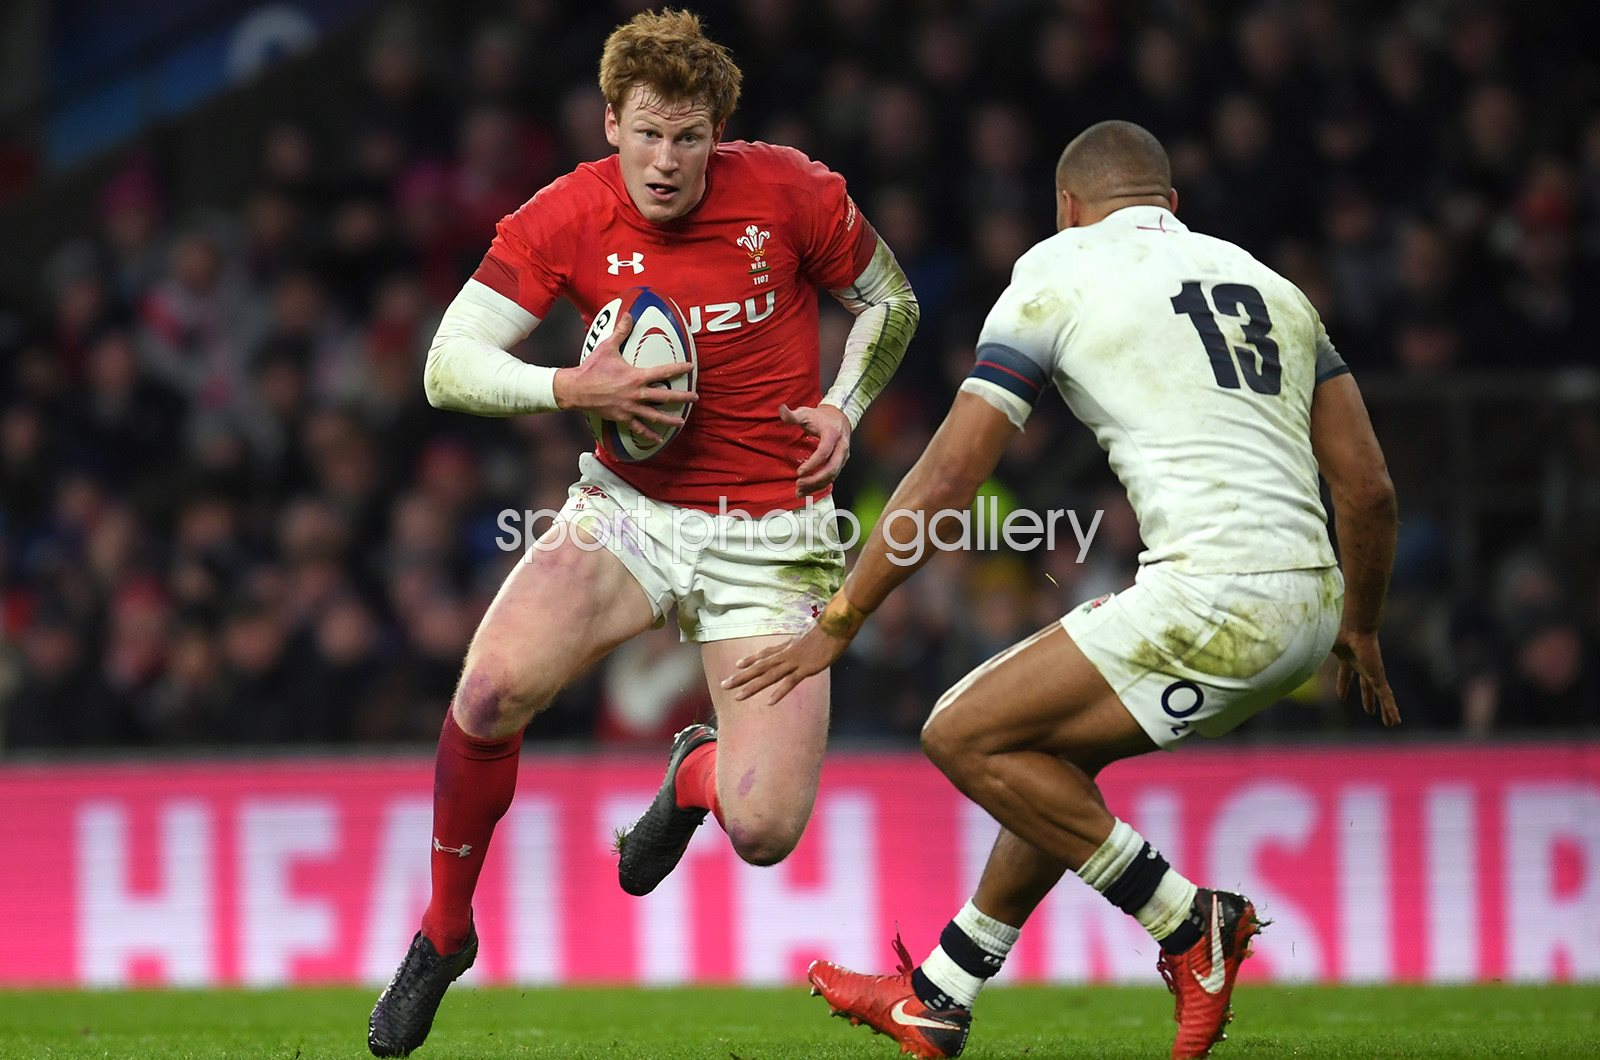 Rhys Patchell Wales v England Twickenham Six Nations 2018